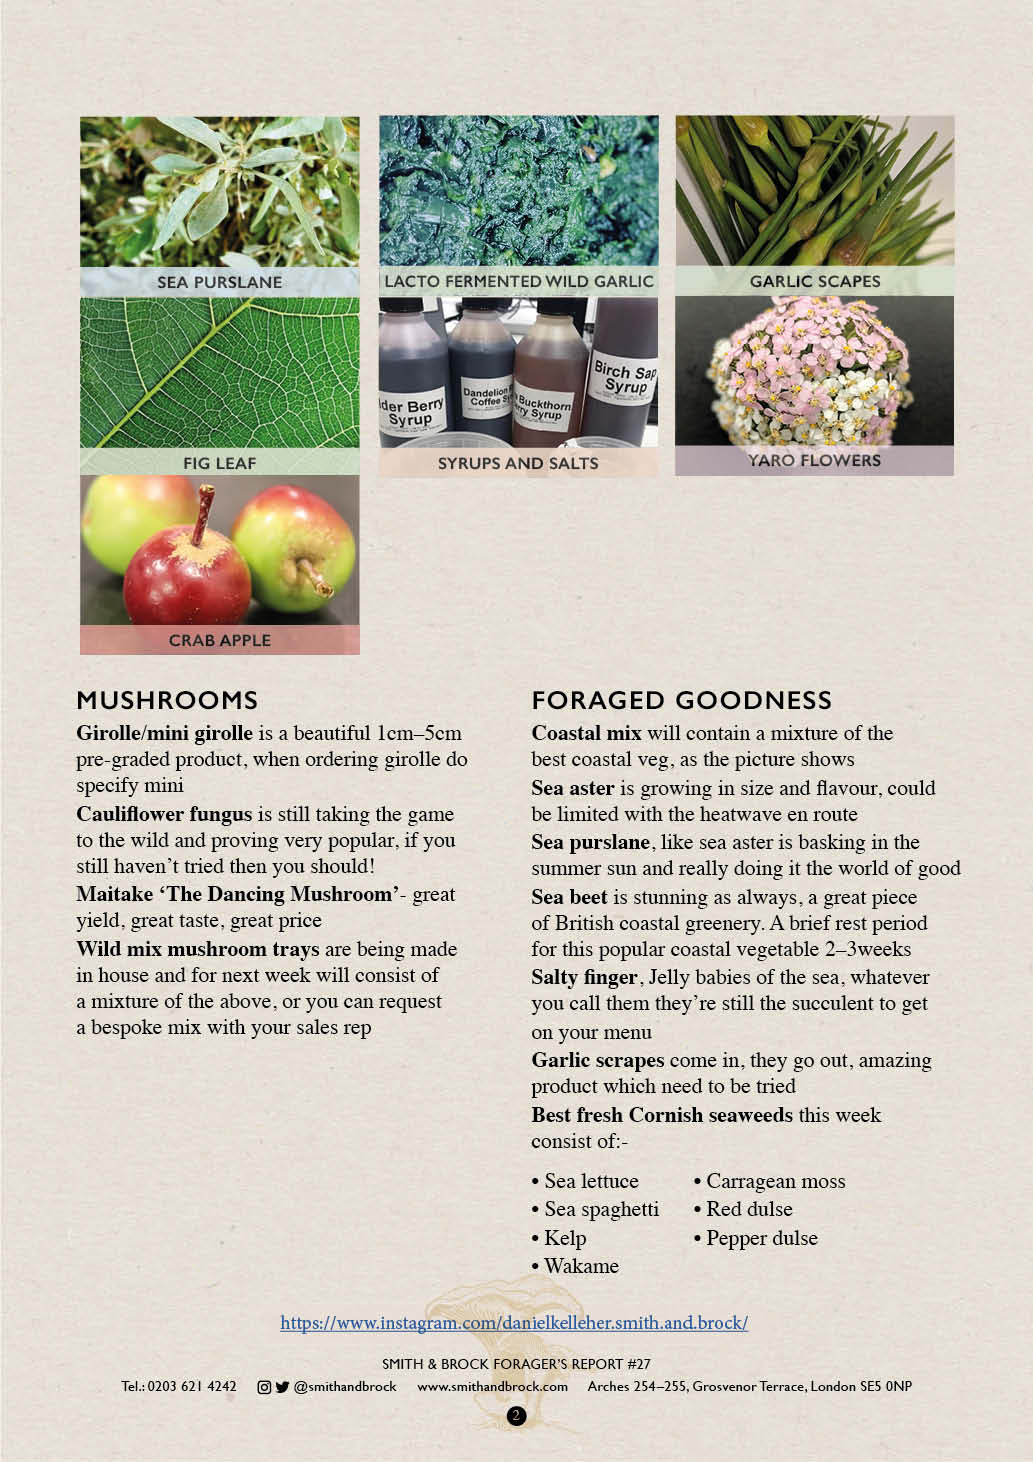 Smith&Brock Foraged Products Report 07 Oct 2019 27 2